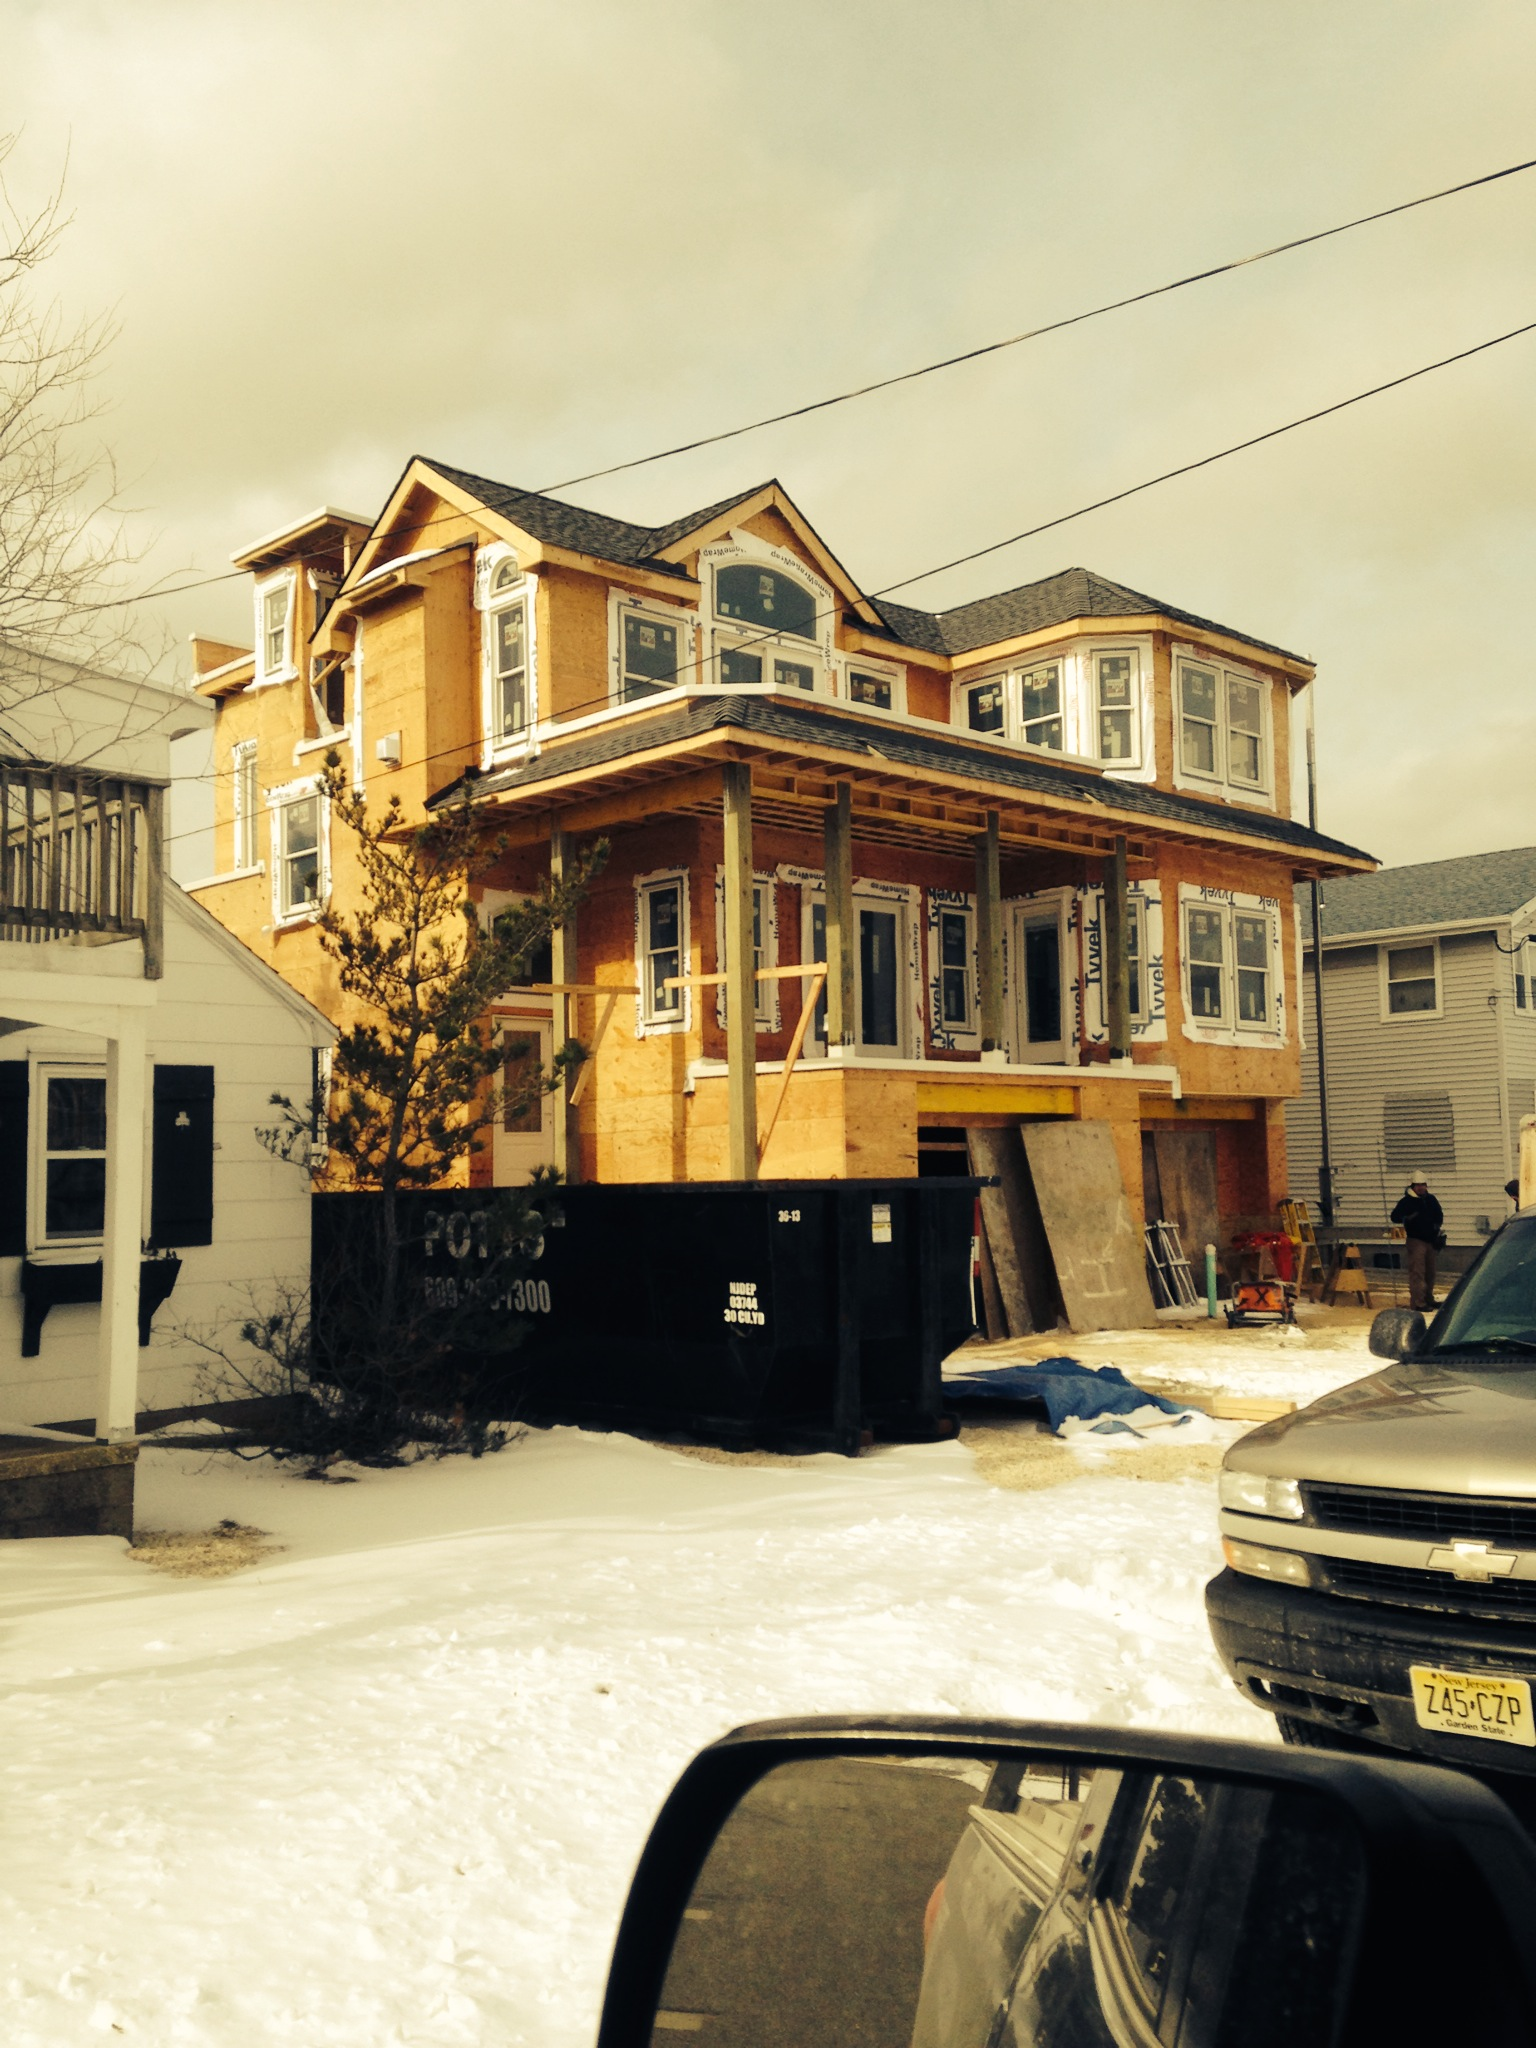 coastal-roofing-and-siding-work-in-progress-long-beach-island-03